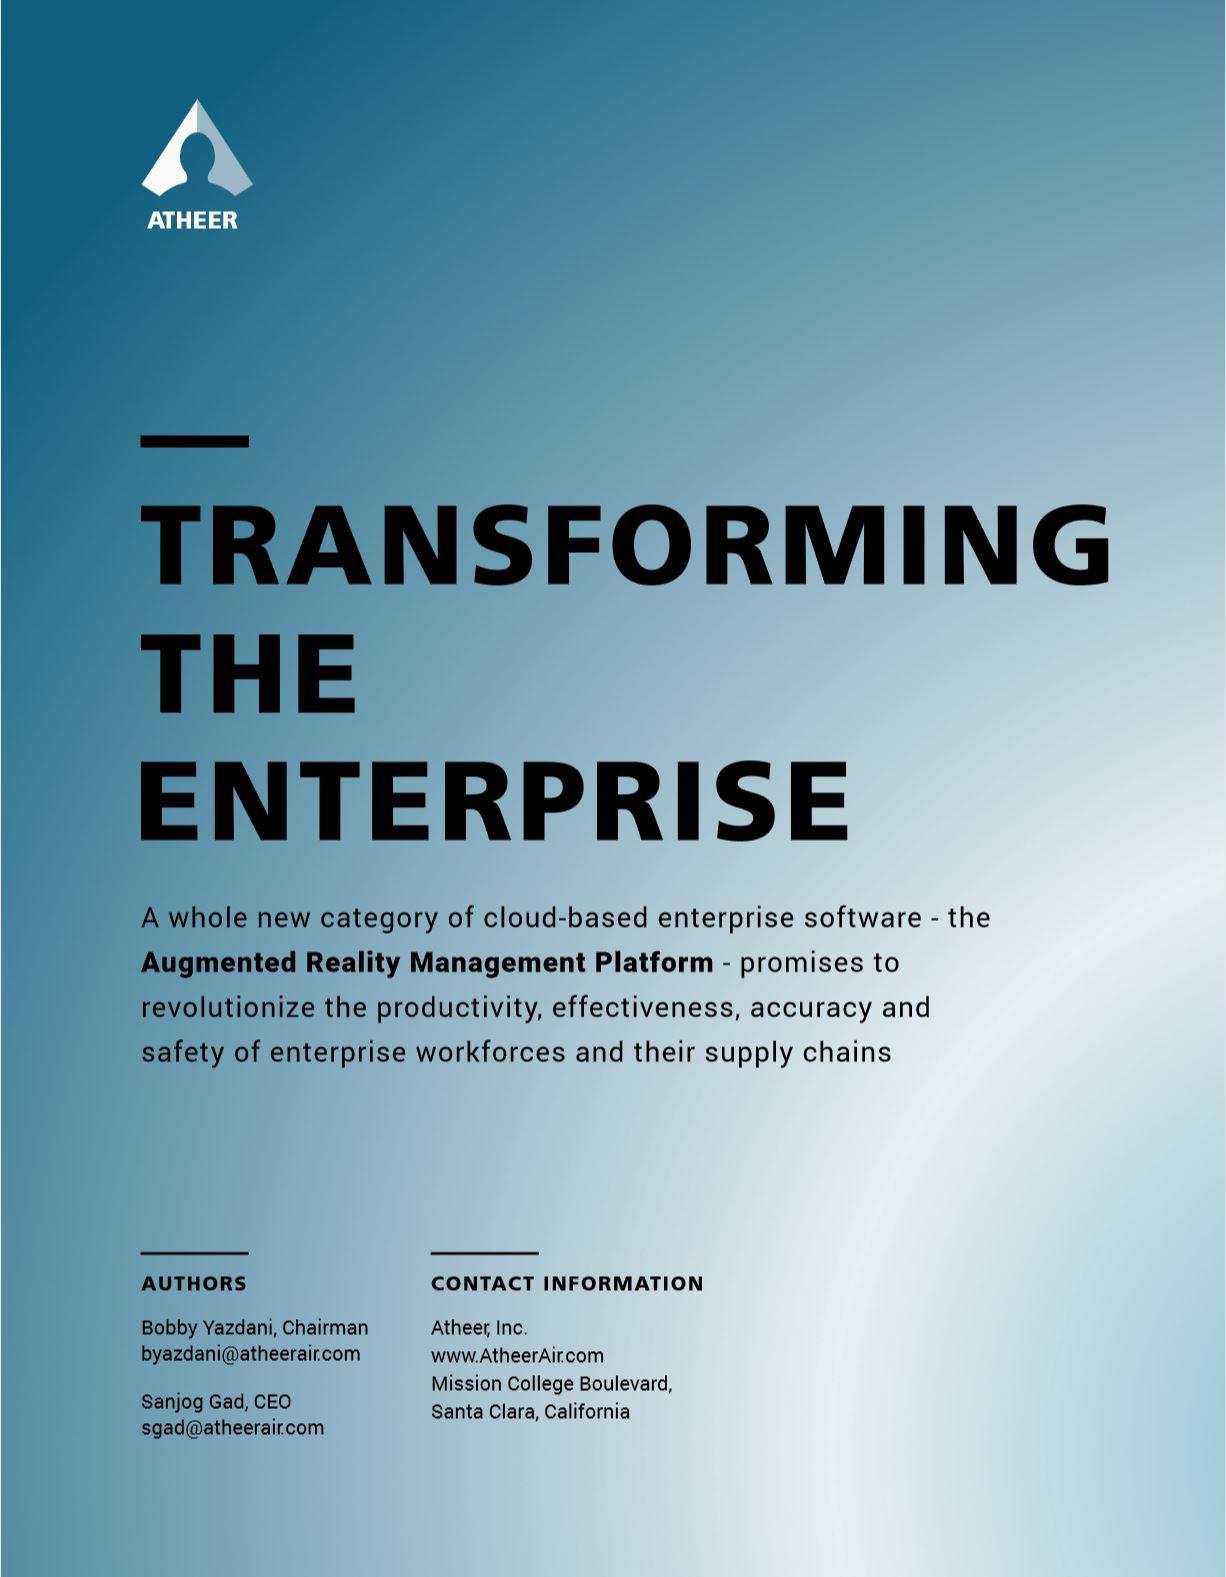 Transforming the Enterprise - Atheer Whitepaper